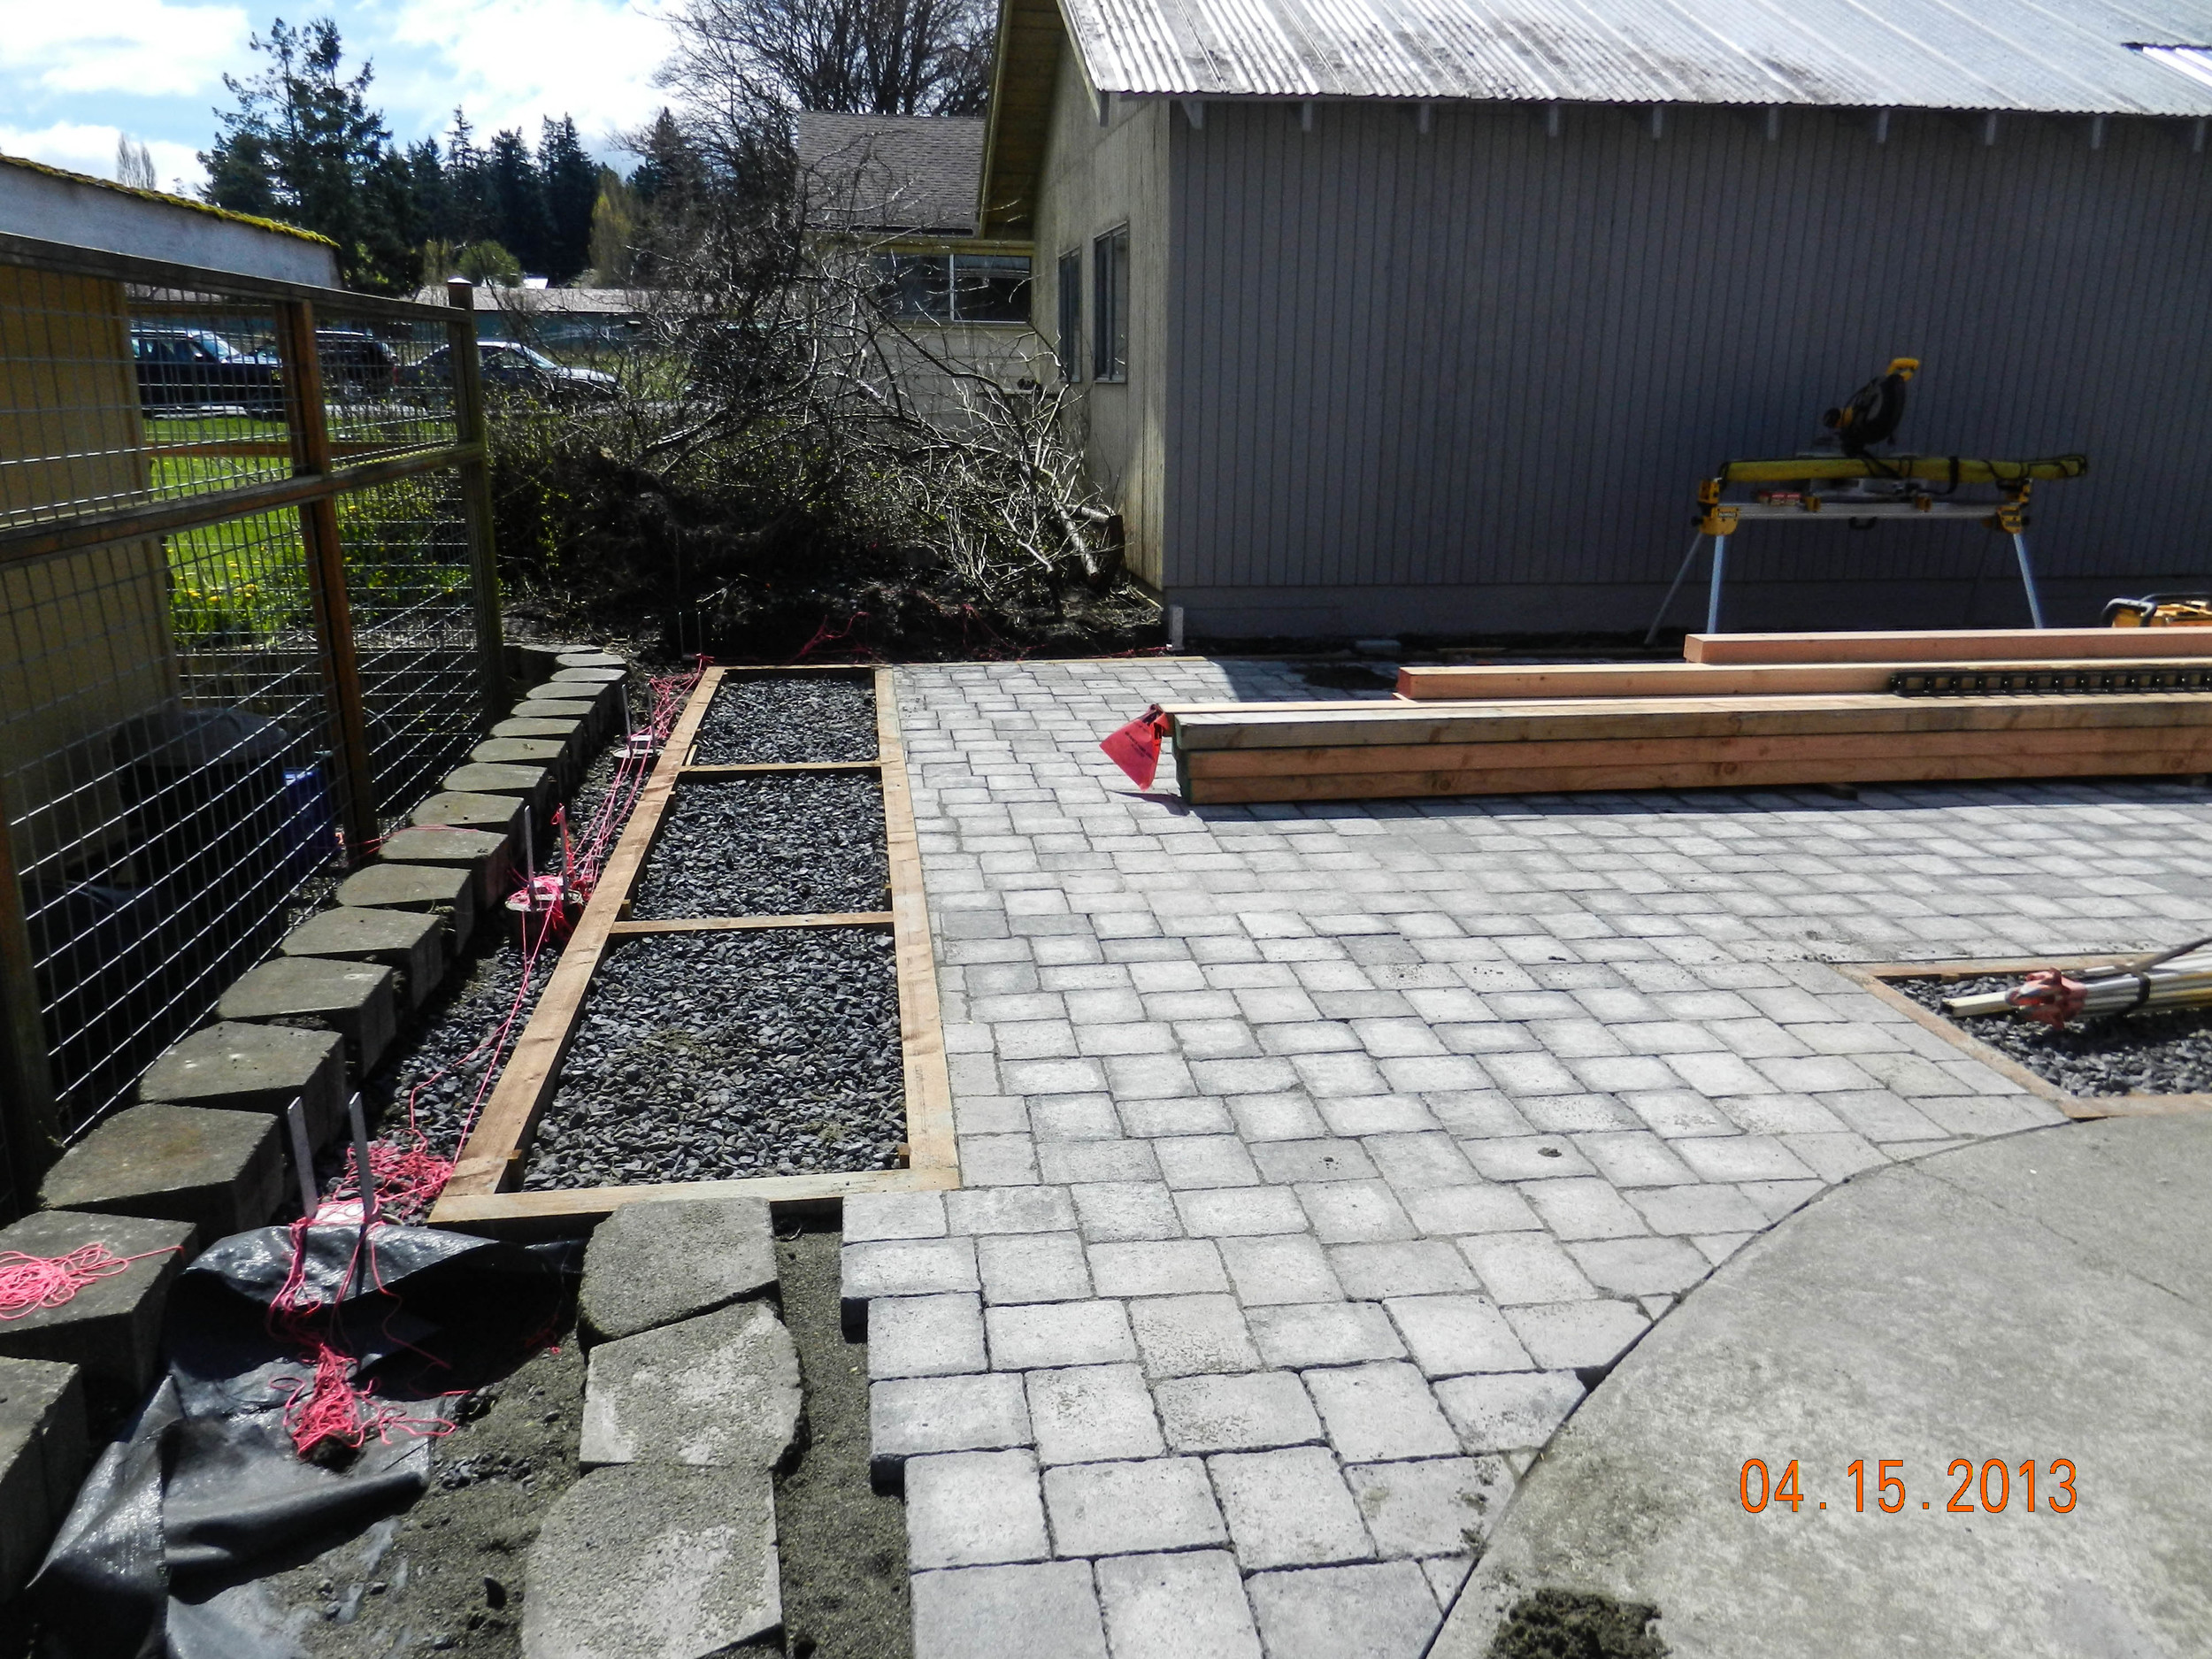 Garden beds being built and pavers in place